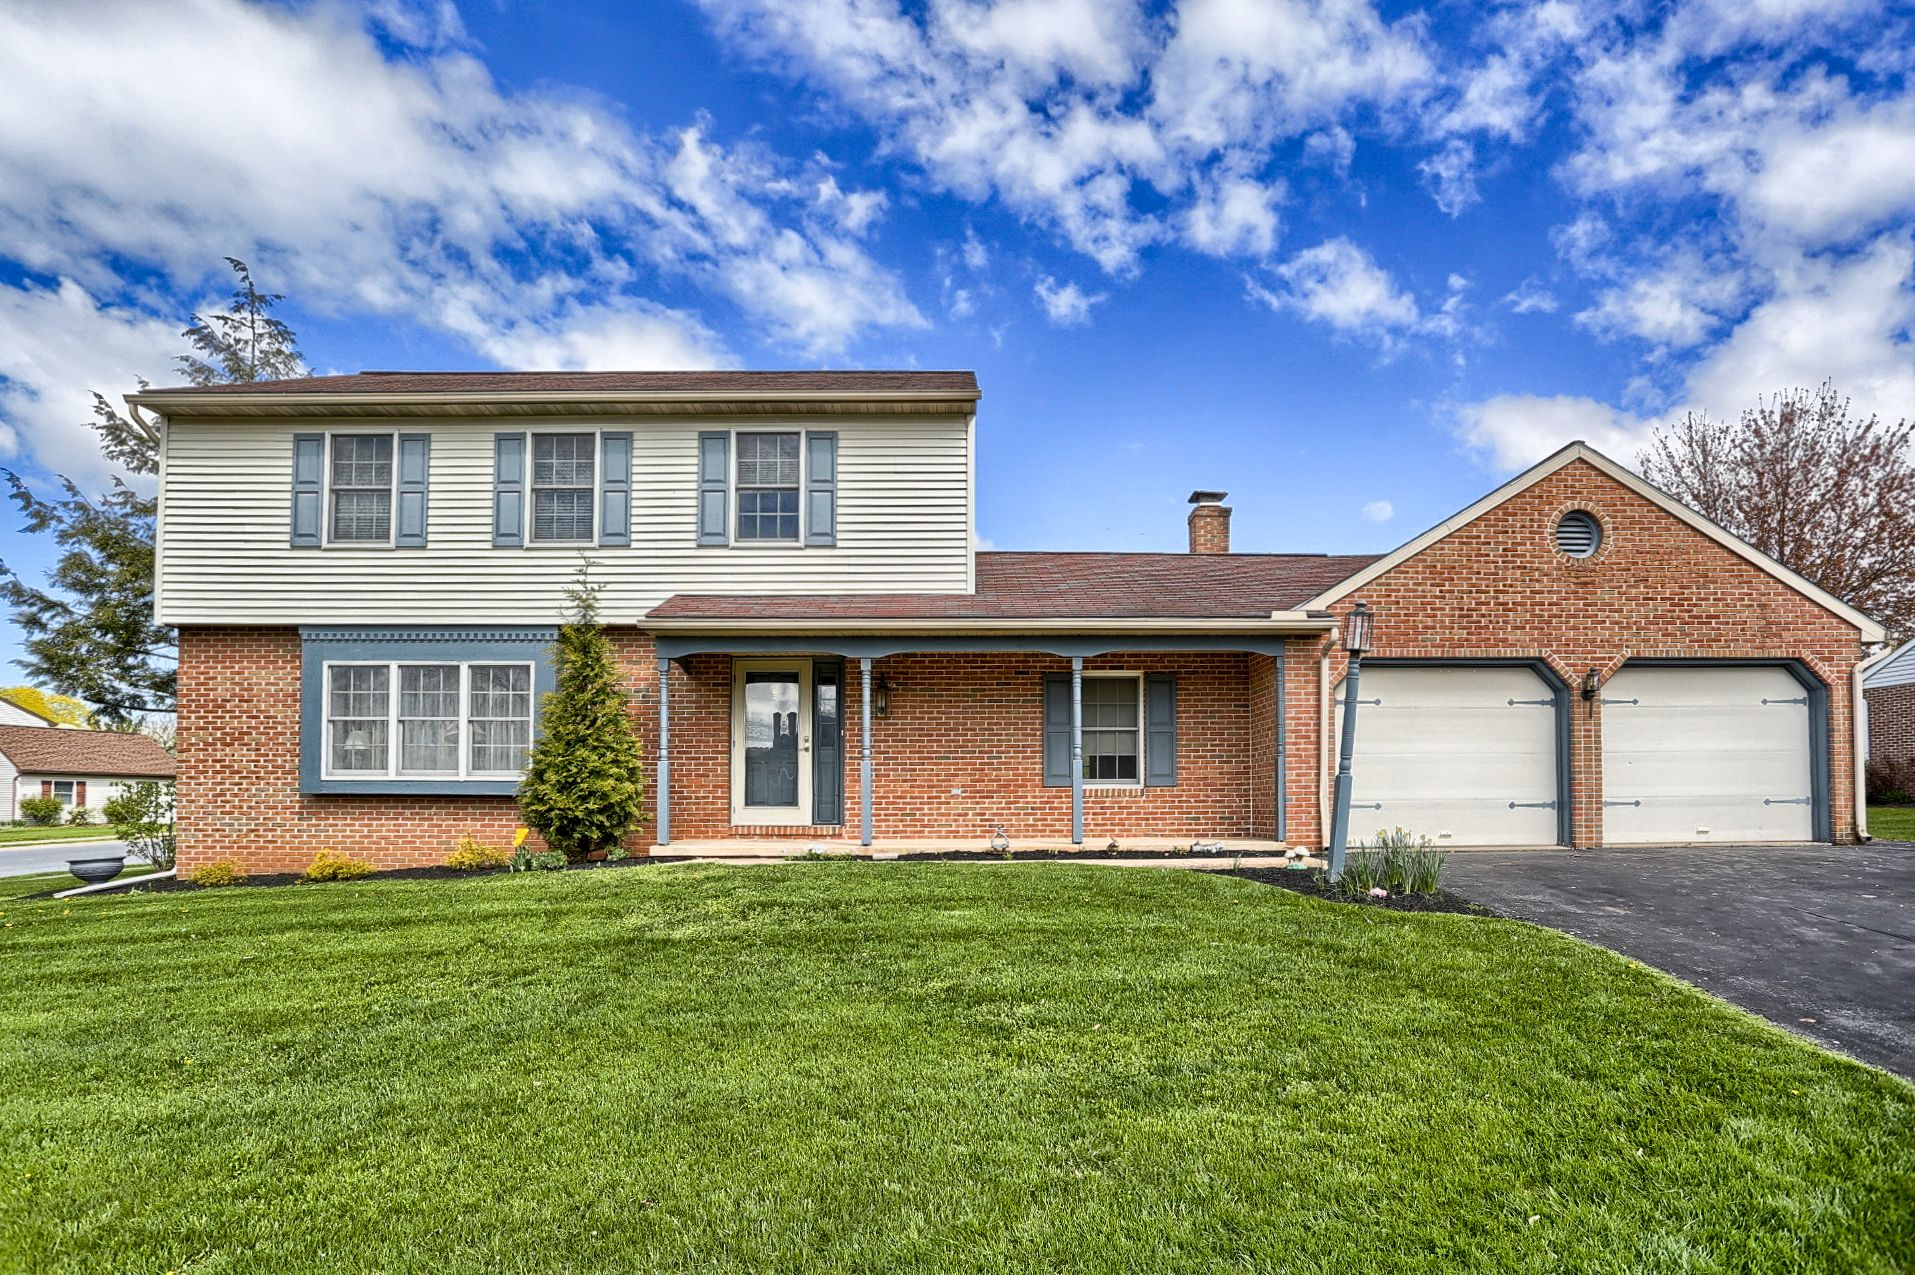 Sold And Settled 2michaellane Denver Pa Cocalicoschooldistrict Homesforsale House Styles Patio Mansions